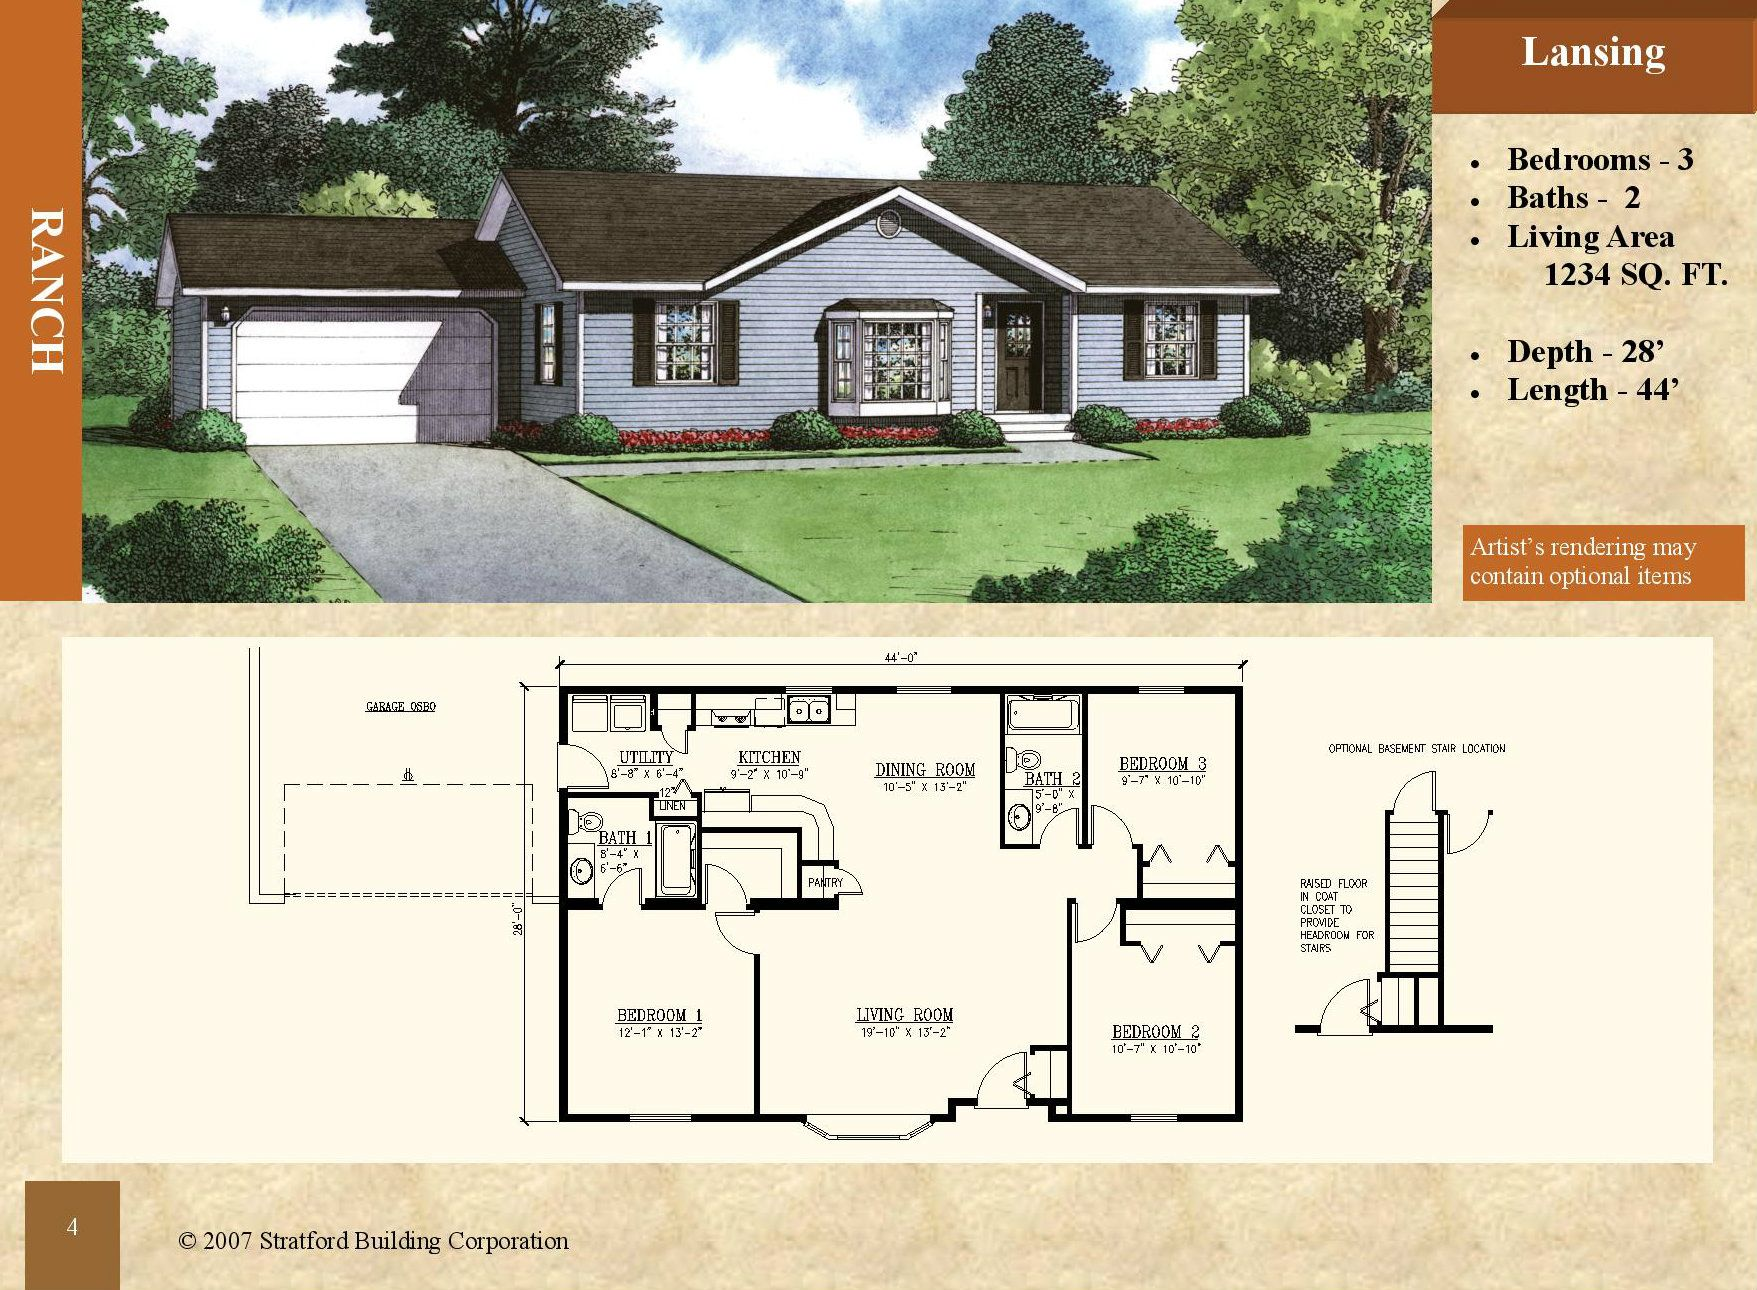 Modular Ranch Style Floor Plan Lansing 1234 Sq Ft 3 Bed 2 Bath Recessed Entry Bay Window Master House Floor Plans Floor Plans Ranch Style Floor Plans